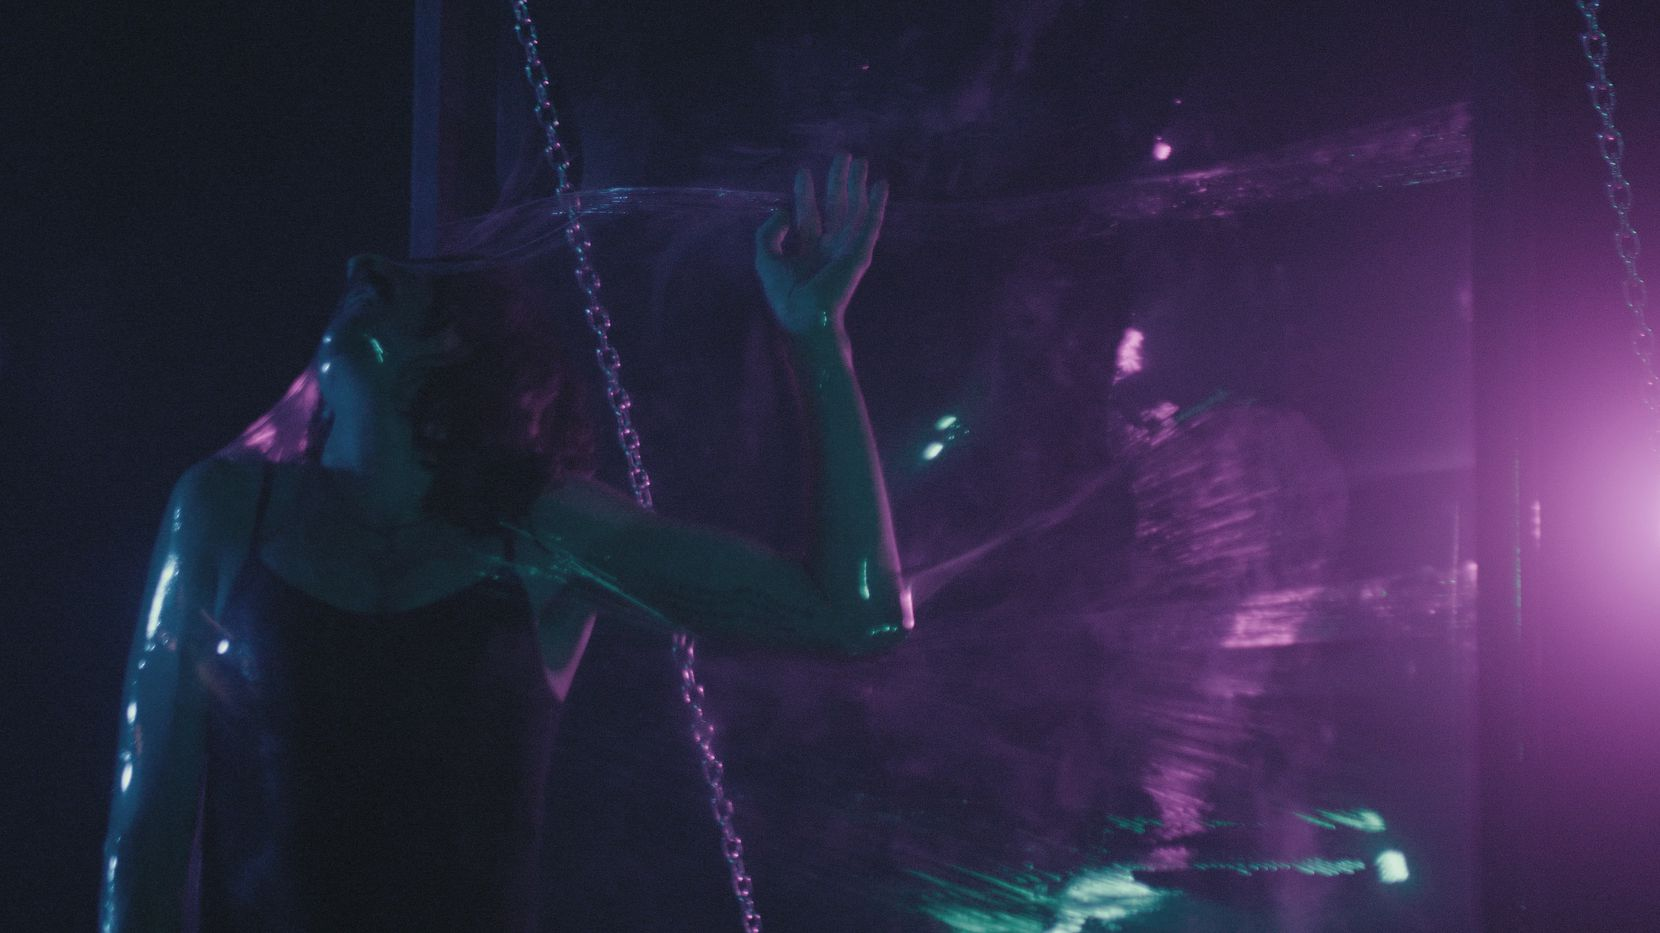 Colton James White performs a series of movements aimed at breaking through a translucent barrier of plastic wrap.